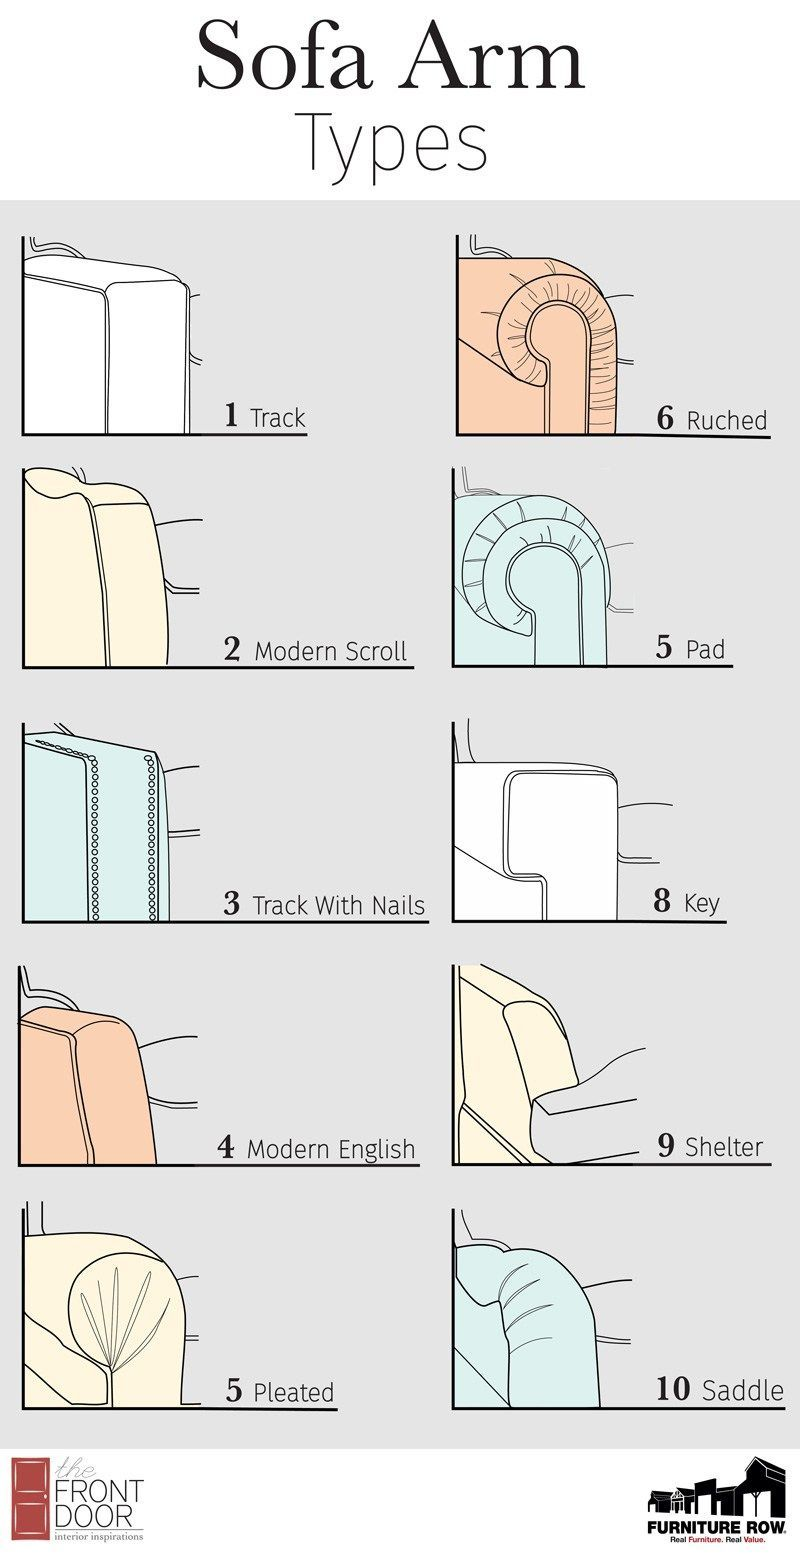 Sofa Arm Types House Design Guide Home Accessories Couch Seating Interiordecorstylescheatsheets Rowe Furniture Reupholstery Reupholster Furniture